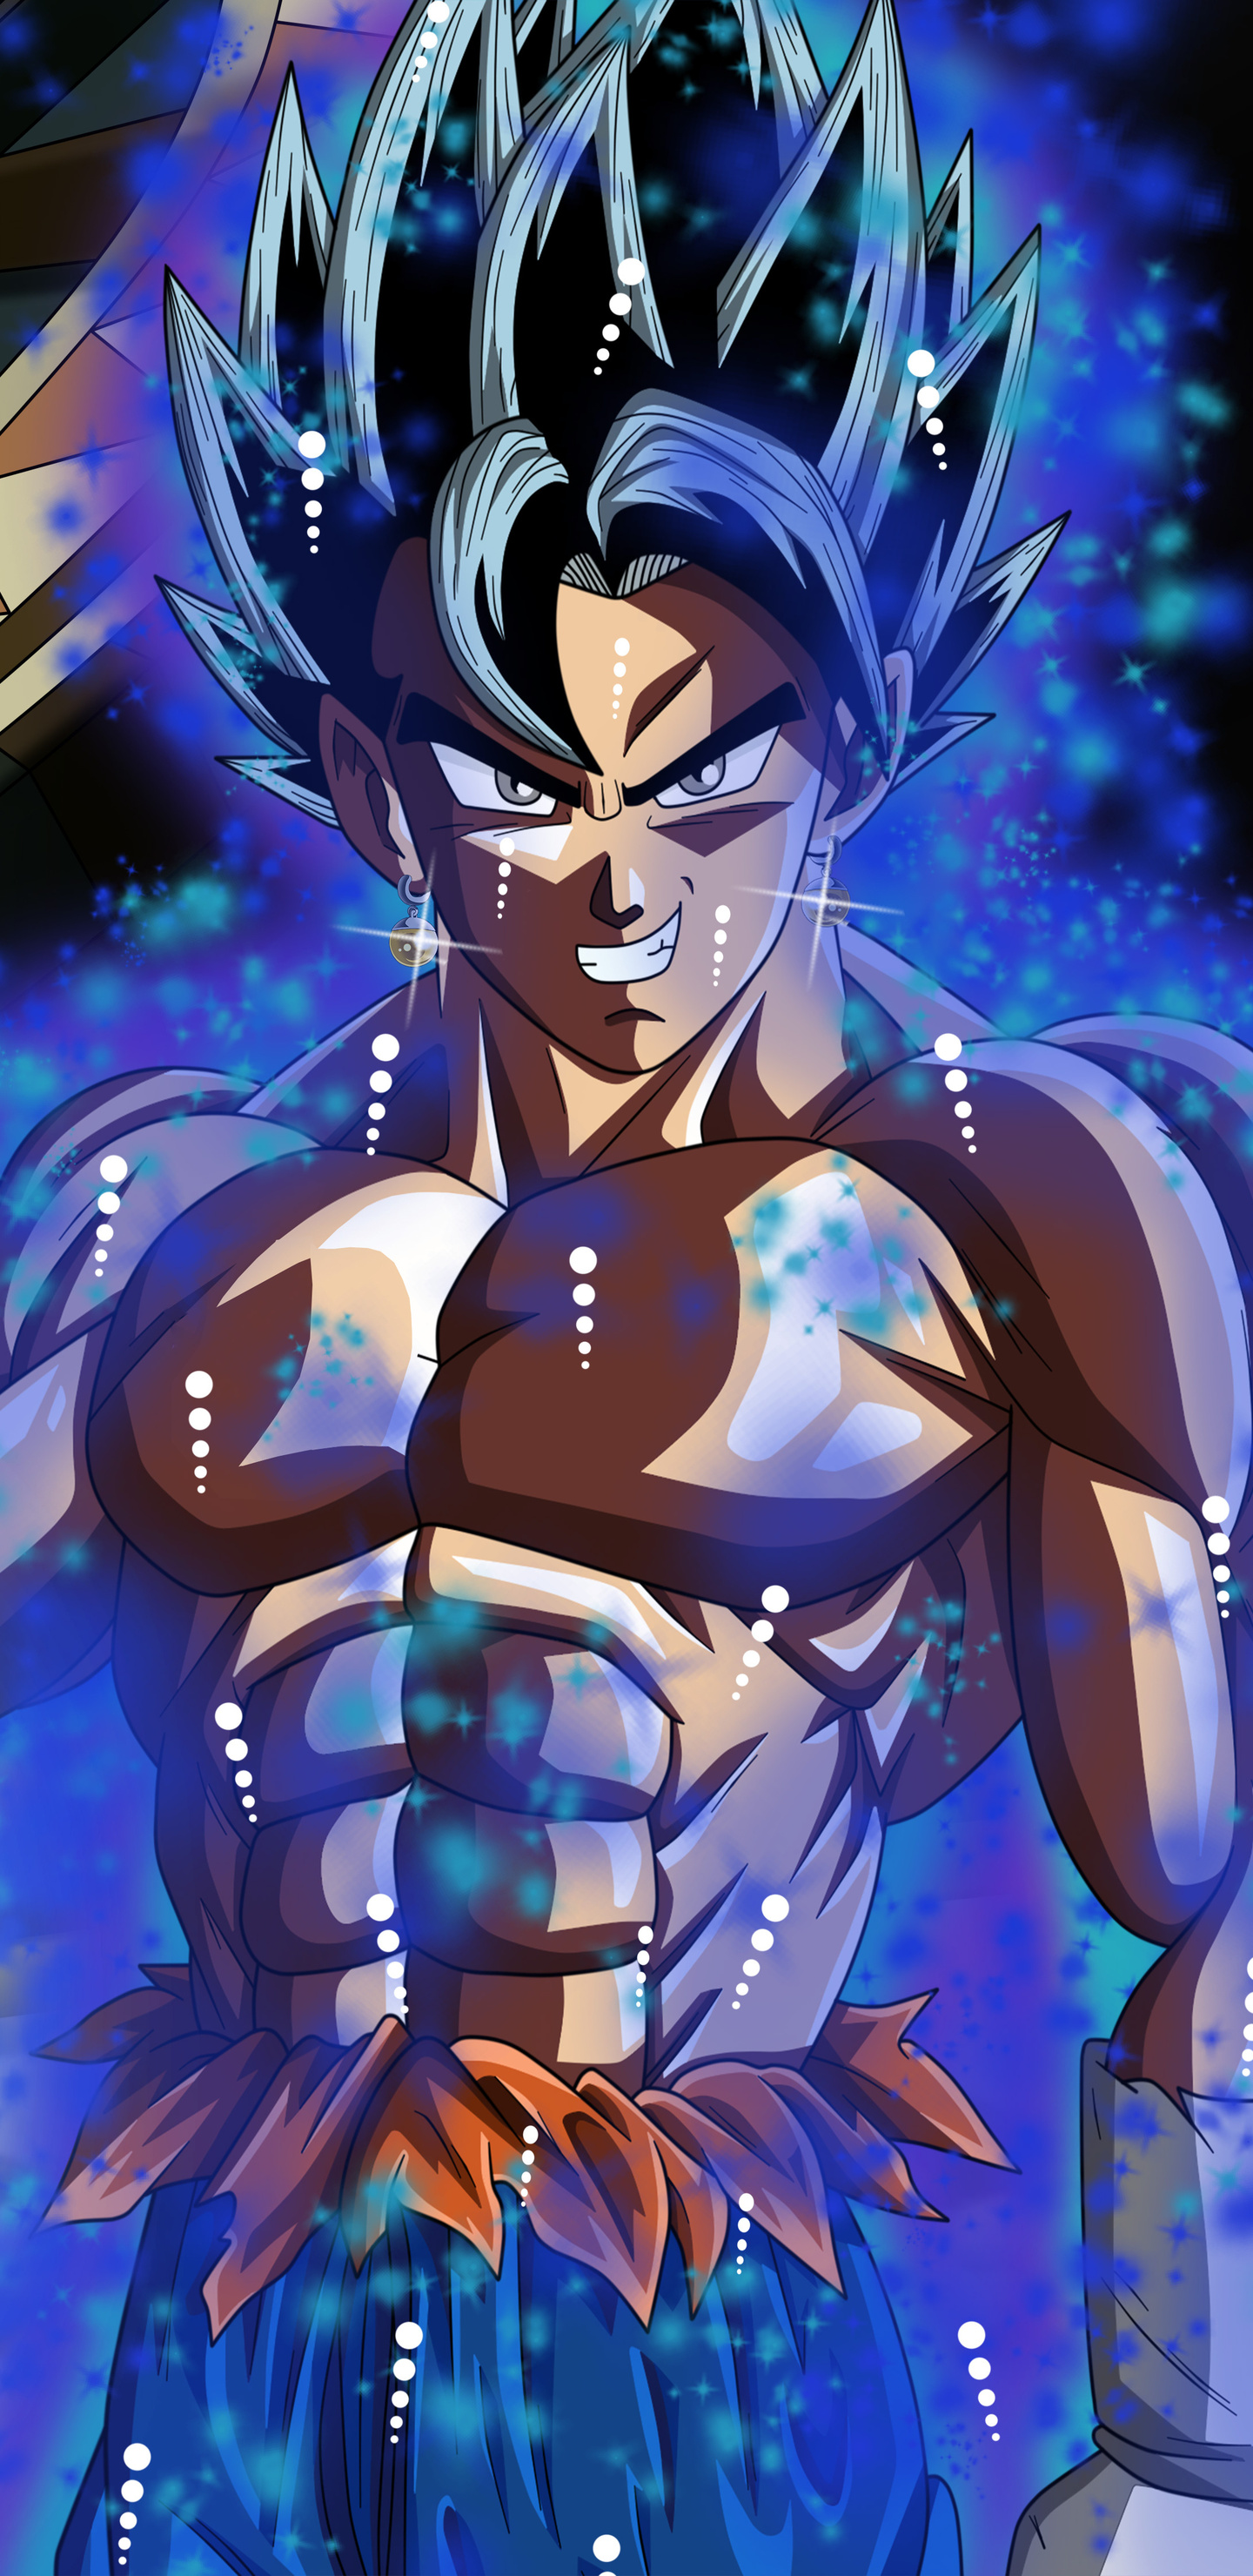 1440x2960 goku dragon ball super 8k samsung galaxy note 9 - Samsung s9 wallpaper 4k ...